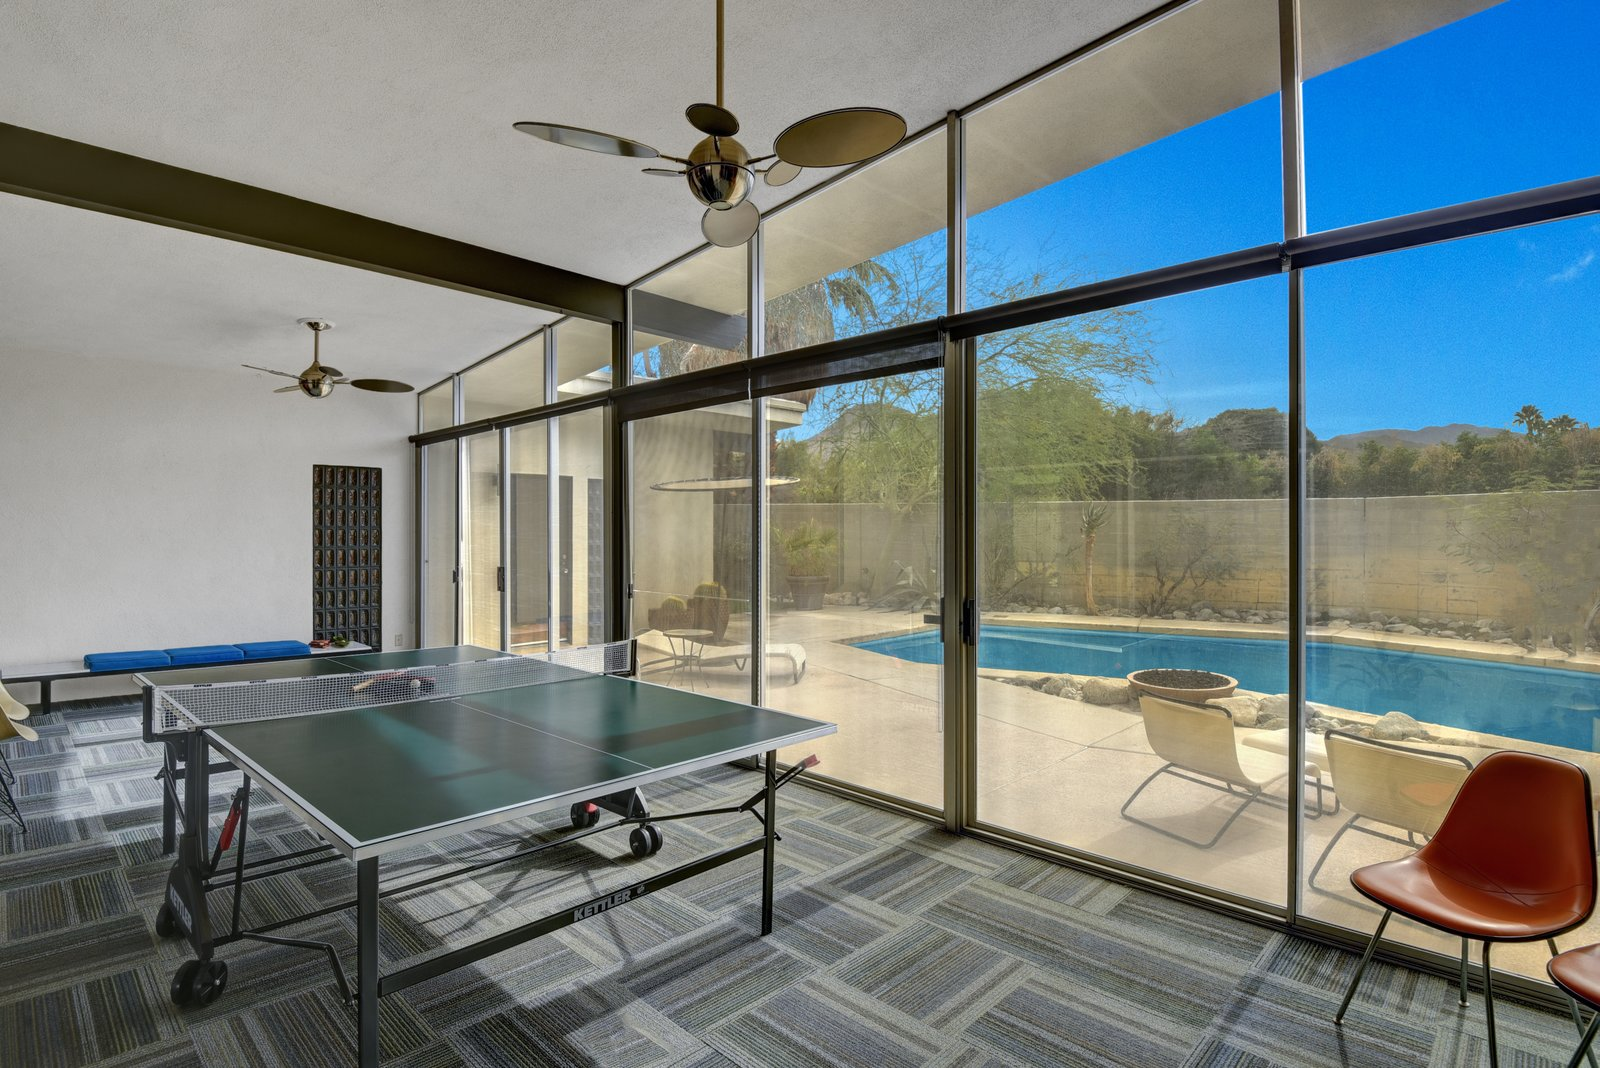 A bonus area overlooks the pool and is currently being used as a game room.